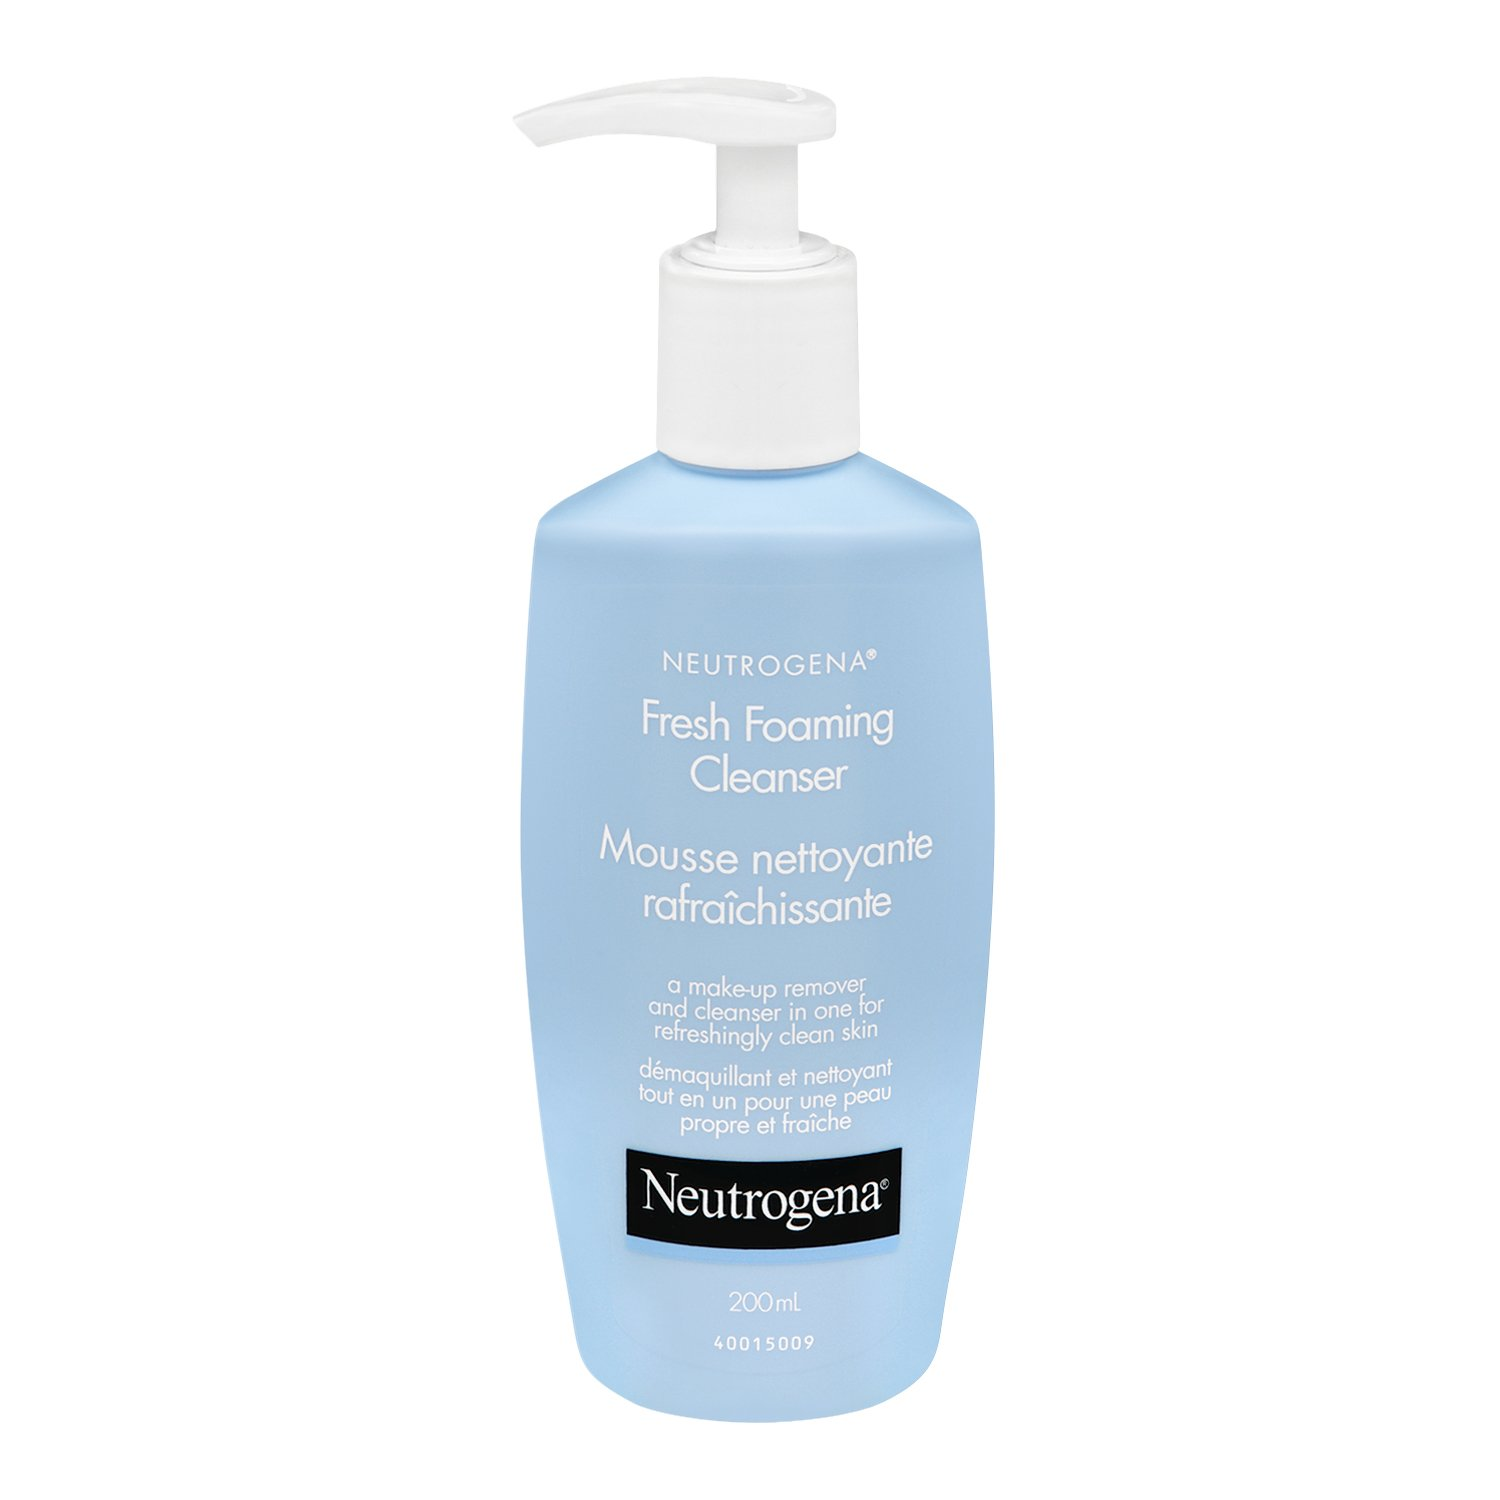 Neutrogena Fresh Foaming Cleanser and Makeup Remover, 200 mL